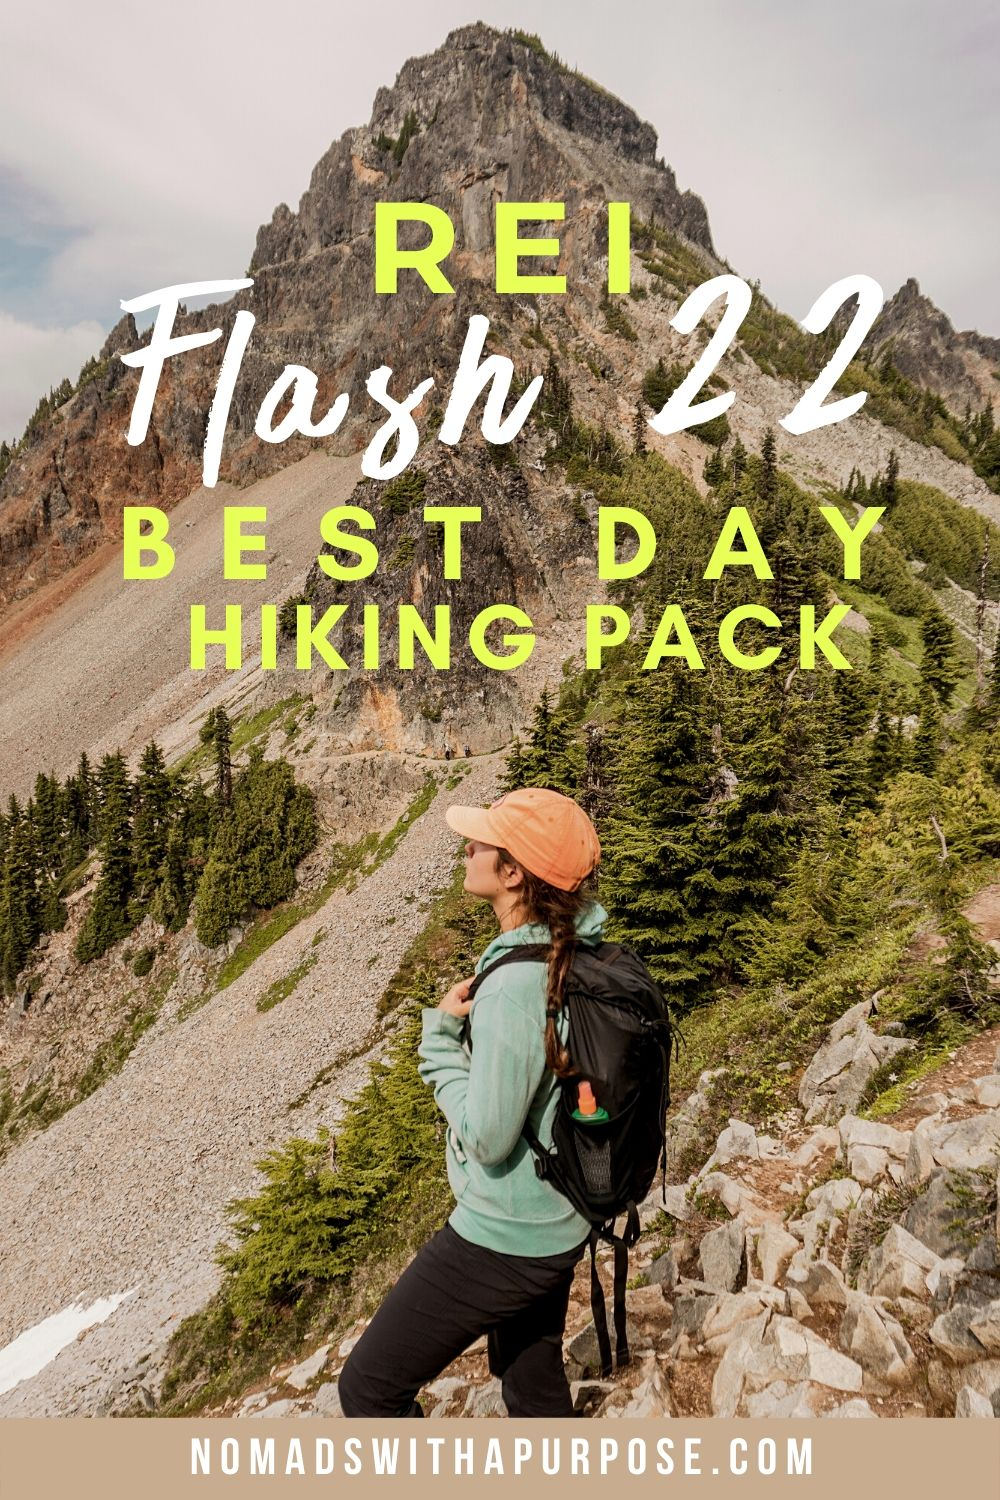 REI Flash 22 best day hiking backpack